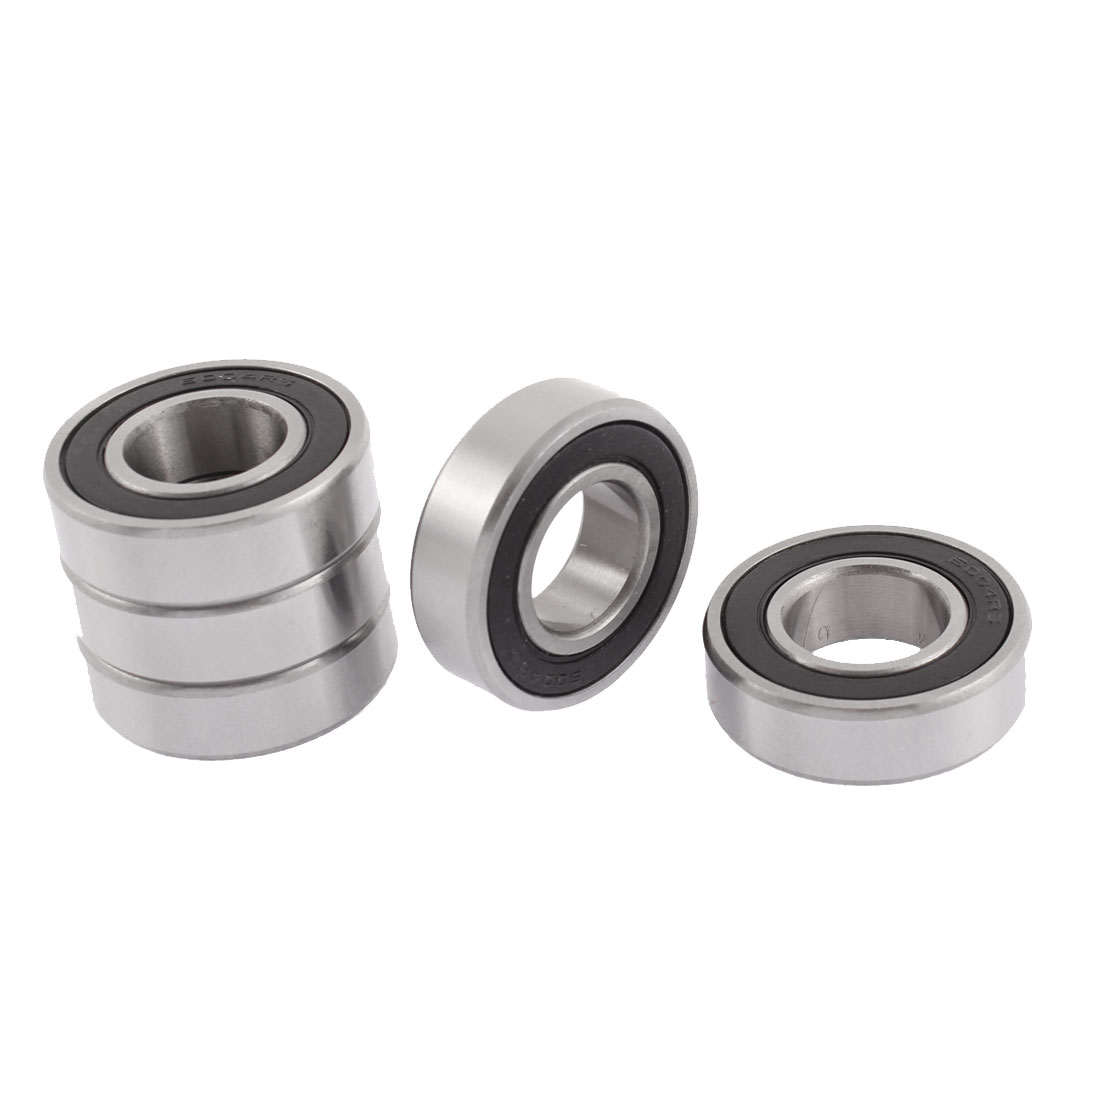 6004RS 42mm x 20mm x 12mm Rubber Sealed Groove Ball Bearings Silver Tone 5 Pcs